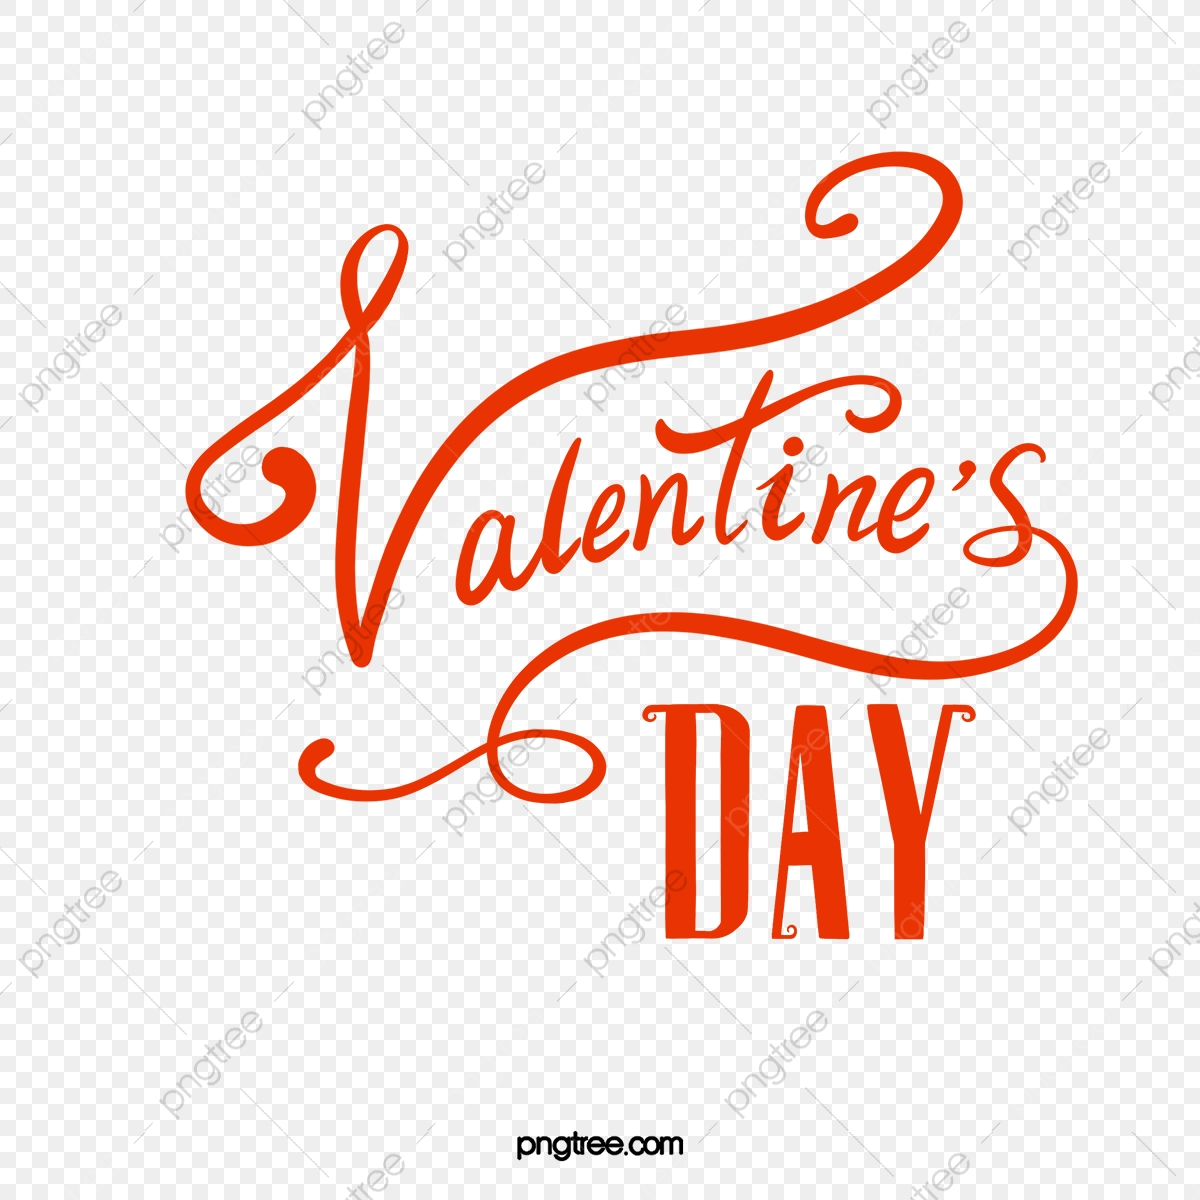 Continental Happy Valentine S Day Valentines Day Font Valentine Fonts Png Transparent Clipart Image And Psd File For Free Download